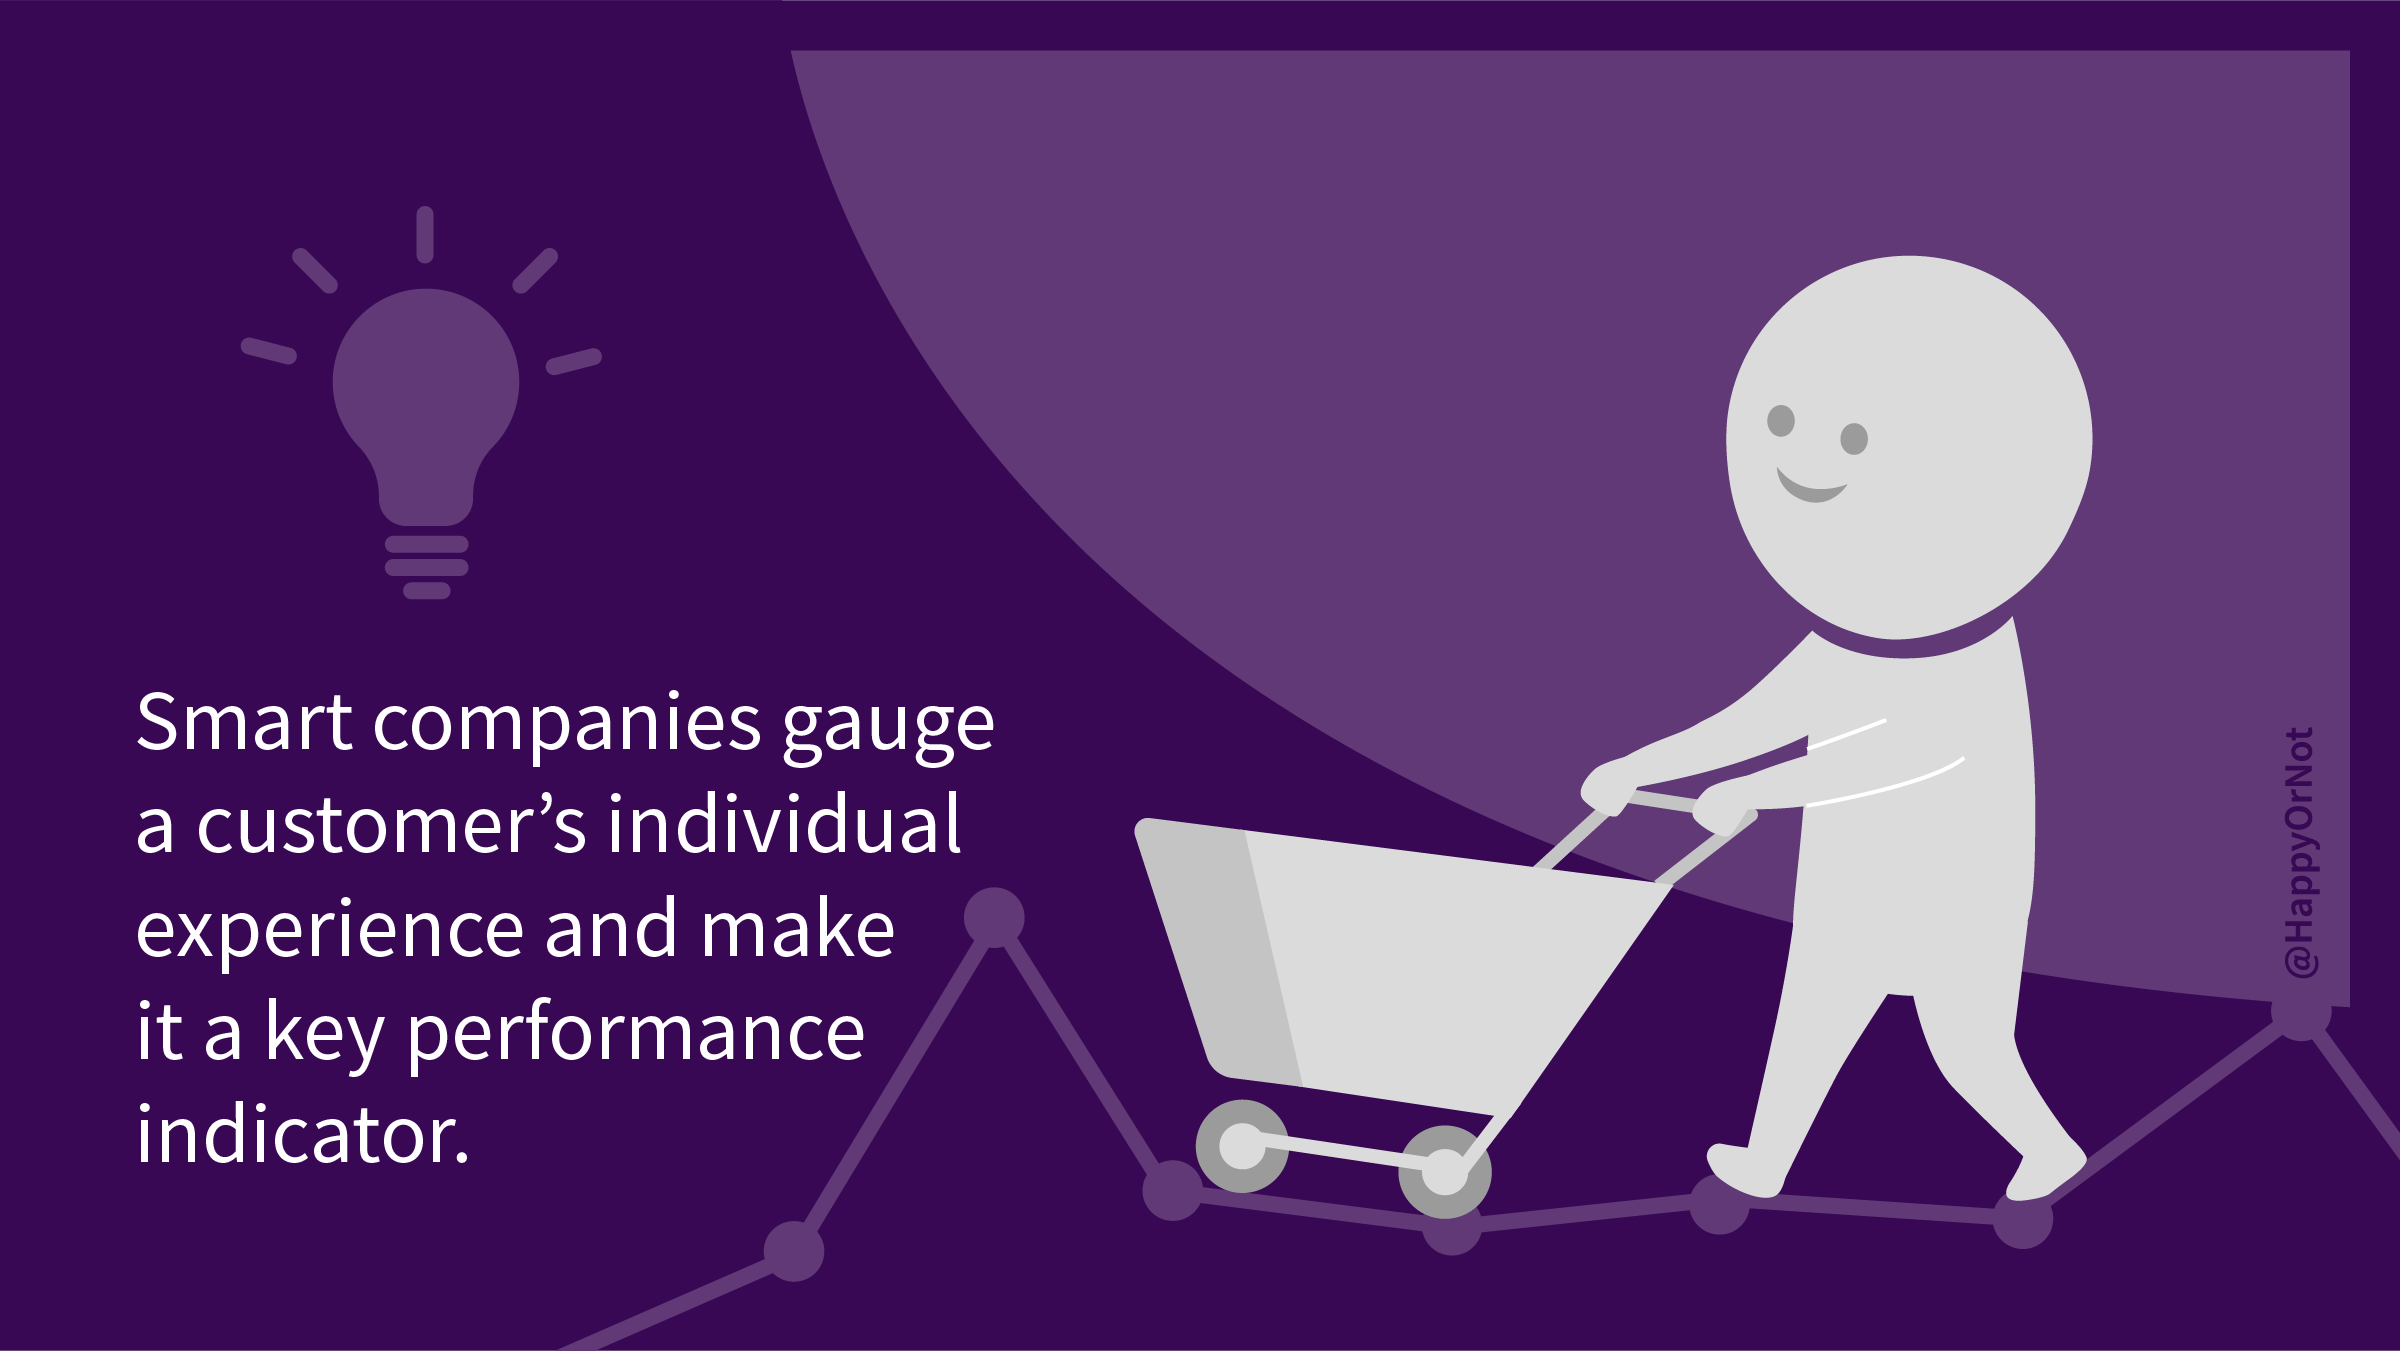 HappyOrNot CX360 Leader Insights: Part 3: Smart companies gauge a customer's individual experience and make it a key performance indicator.